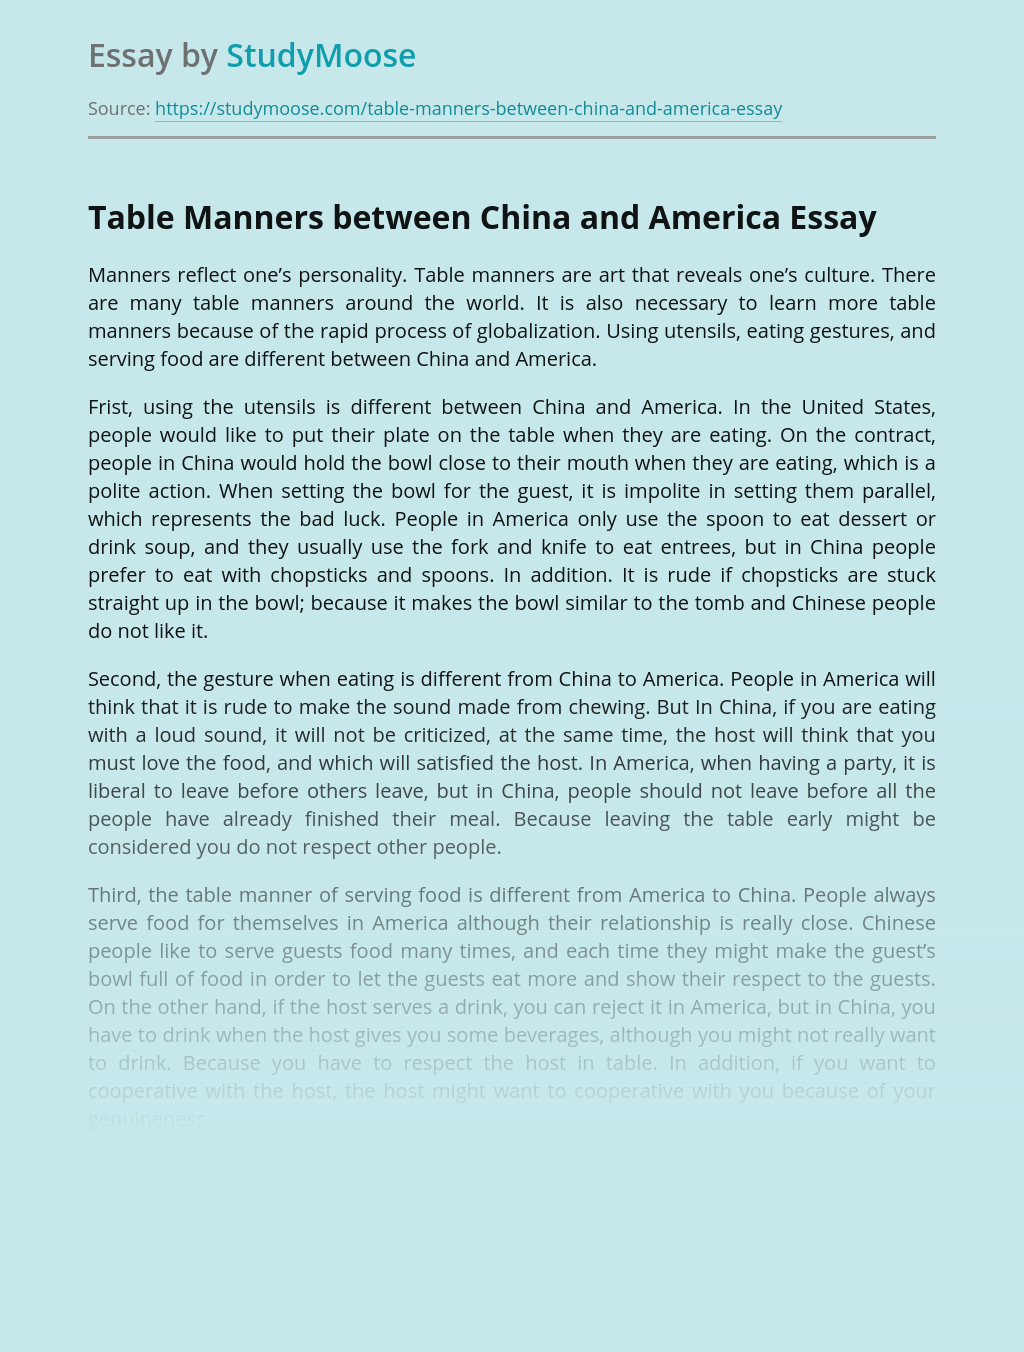 Table Manners between China and America